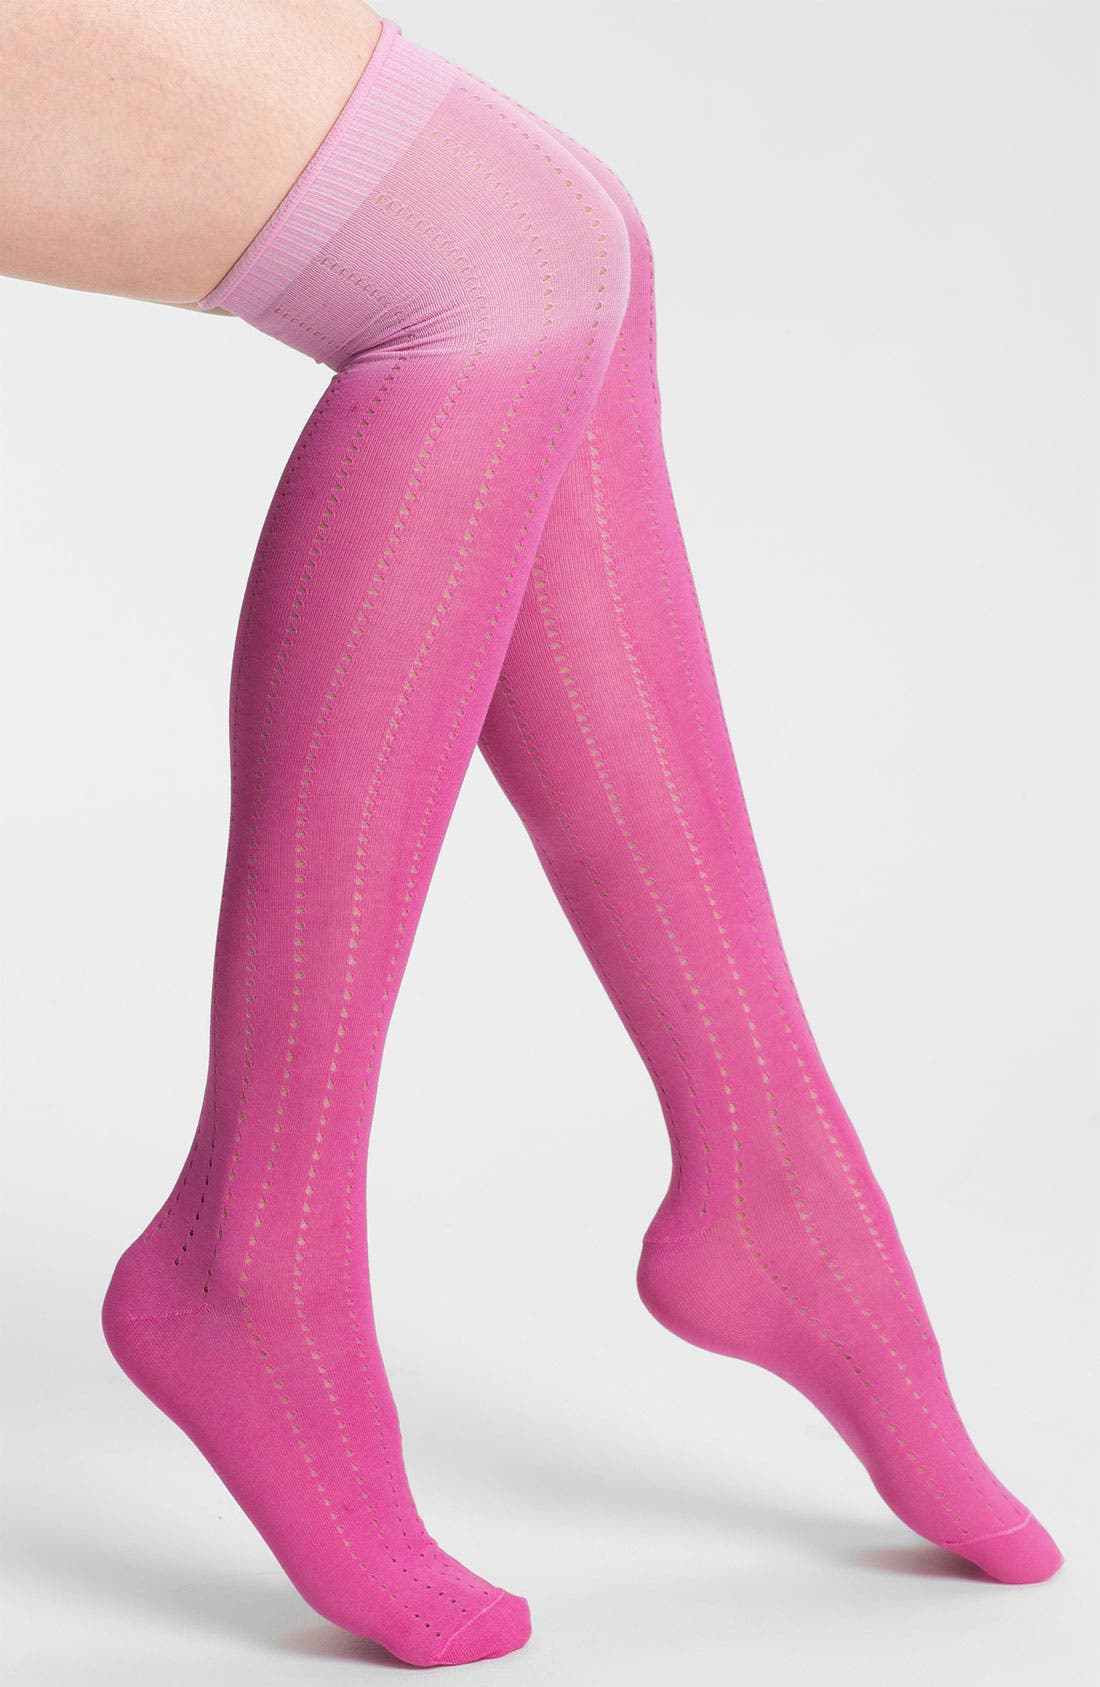 Main Image - Nordstrom 'Dip Your Toe In' Over the Knee Socks